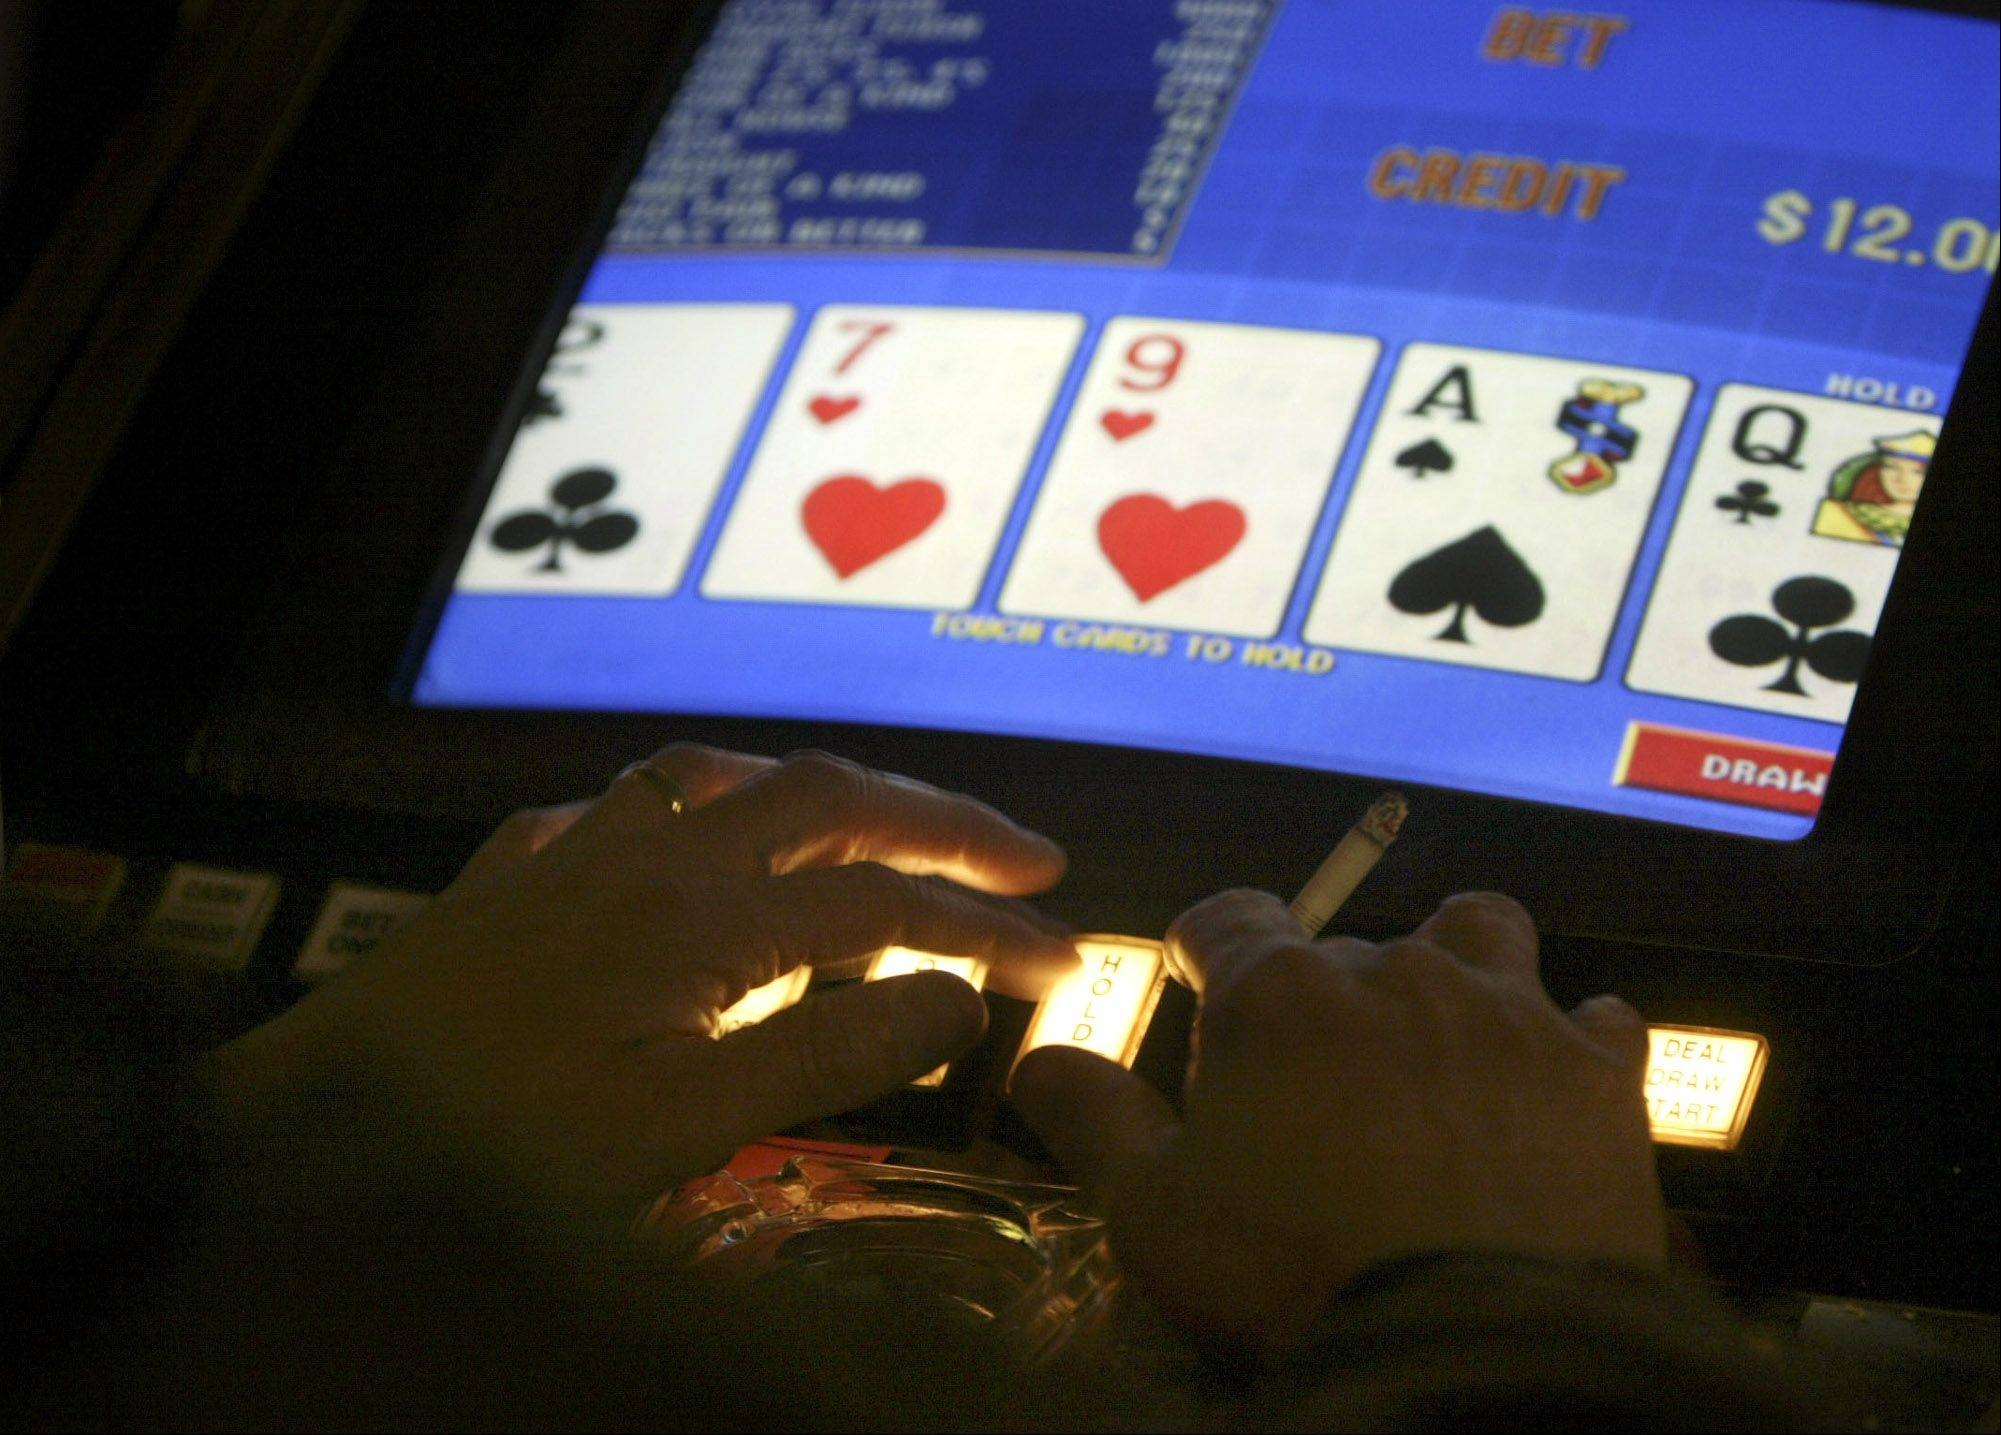 The Elk Grove Park District will decide on a vendor for video gambling machines to place in a bar on its golf course, pending Illinois Gaming Board approval.